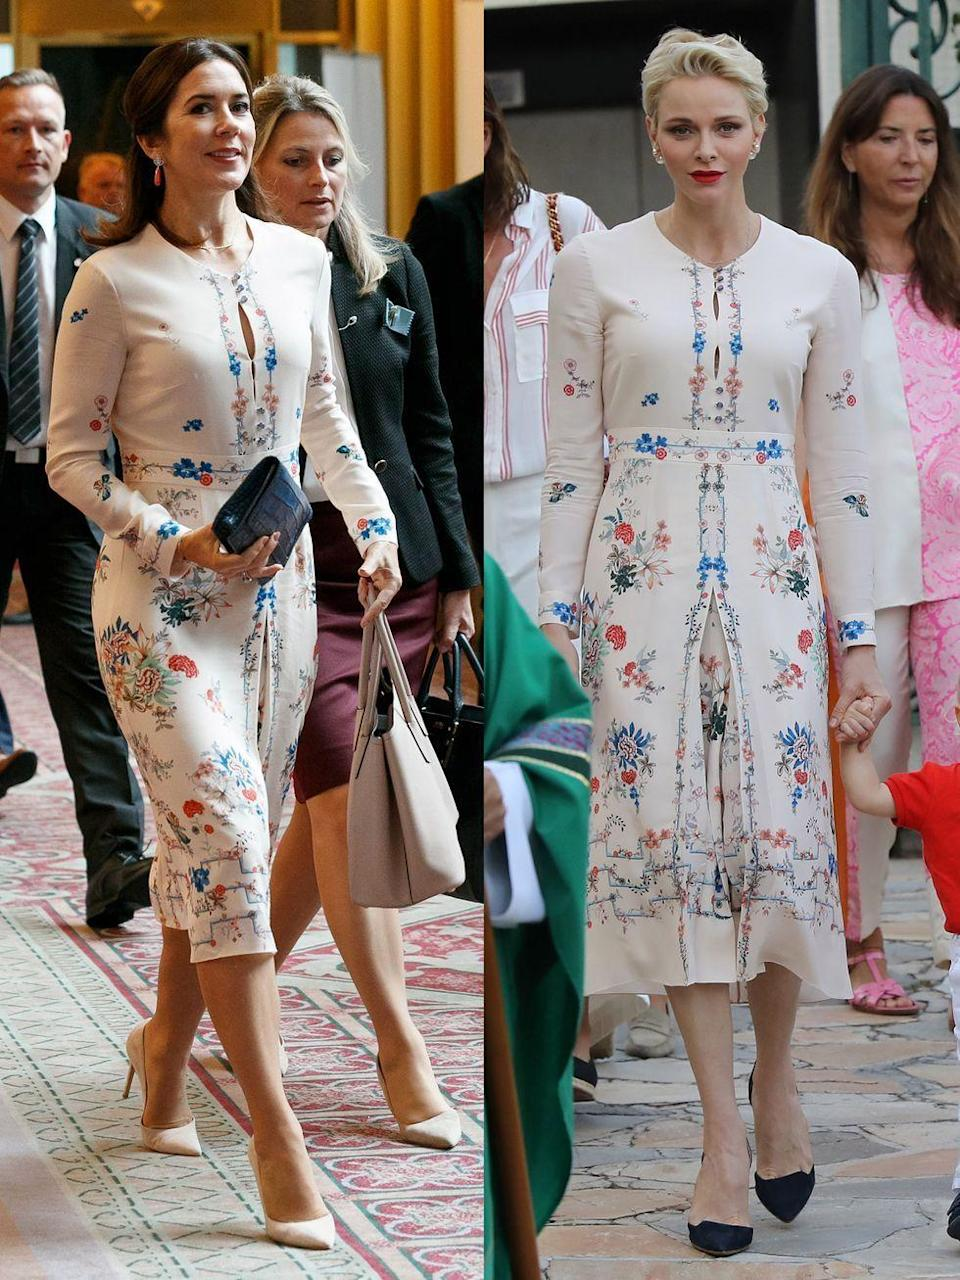 <p><strong>Left: </strong>Princess Mary of Denmark attended a business seminar at Hotel Gajoen Tokyo, wearing Vilshenko in October of 2017.</p><p><strong>Right: </strong>Princess Charlene of Monaco wore the same floral dress one year earlier, though she styled with black pumps as opposed to nude, at Monaco's traditional end-of-summer picnic in September of 2016.</p>